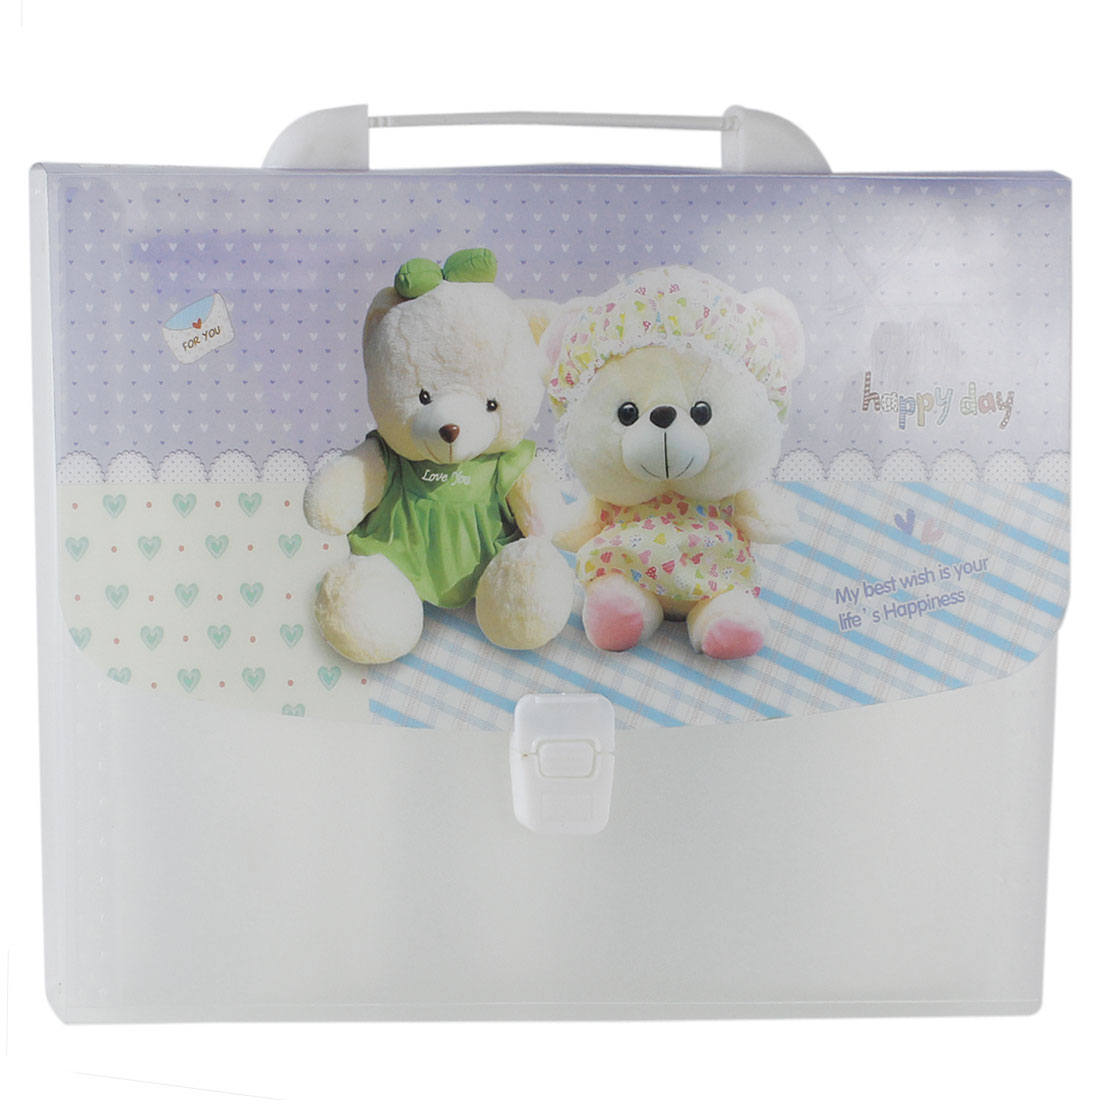 Plastic Bears Printed 13 Pockets Paper Document File Holder Wallet Colorful